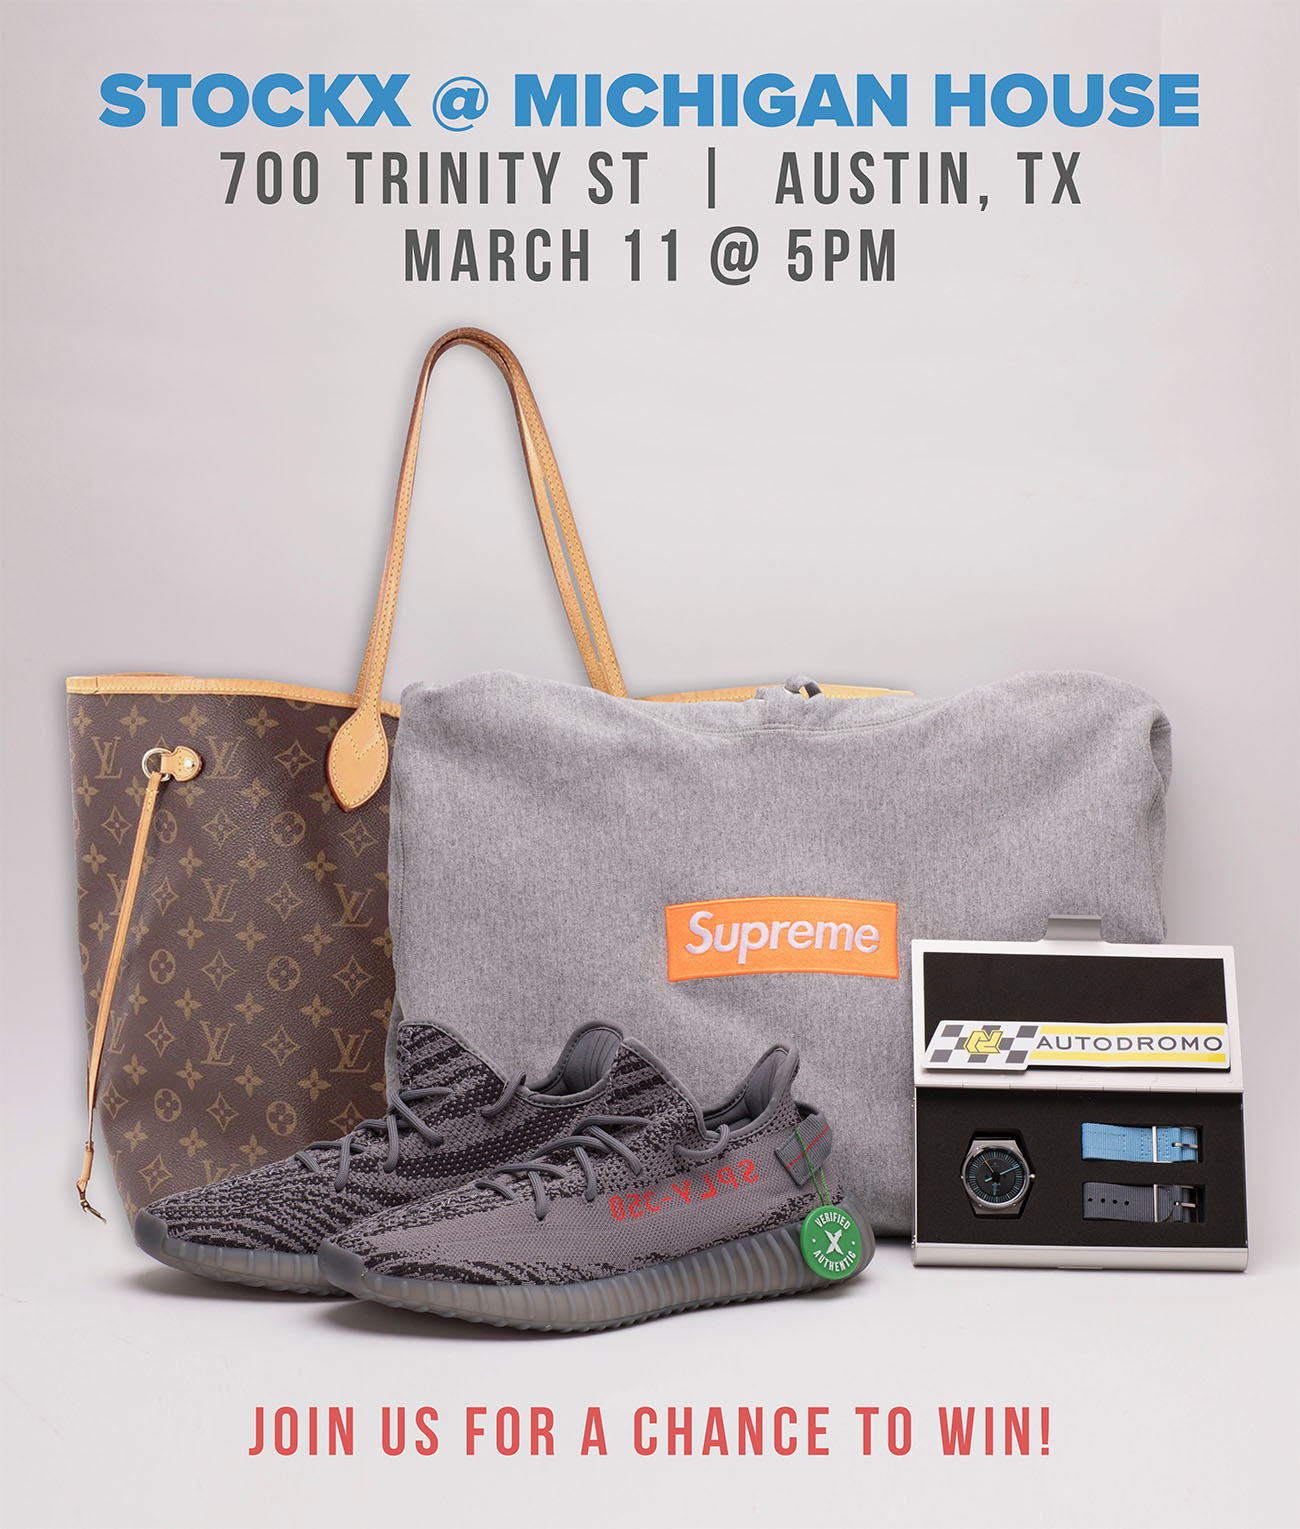 cd844ca930 StockX at SXSW: Free prizes, a karaoke RV, and more.